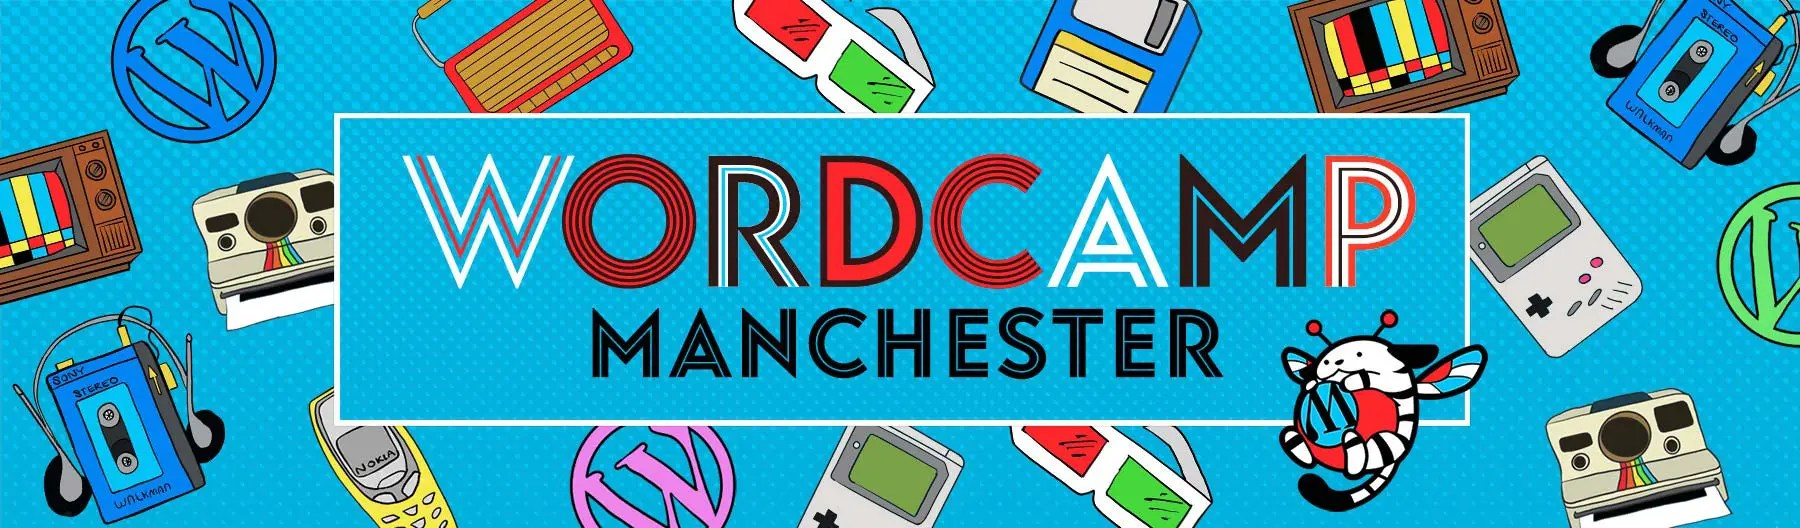 WordCamp Manchester Design Project with Factory Digital Marketing Agency